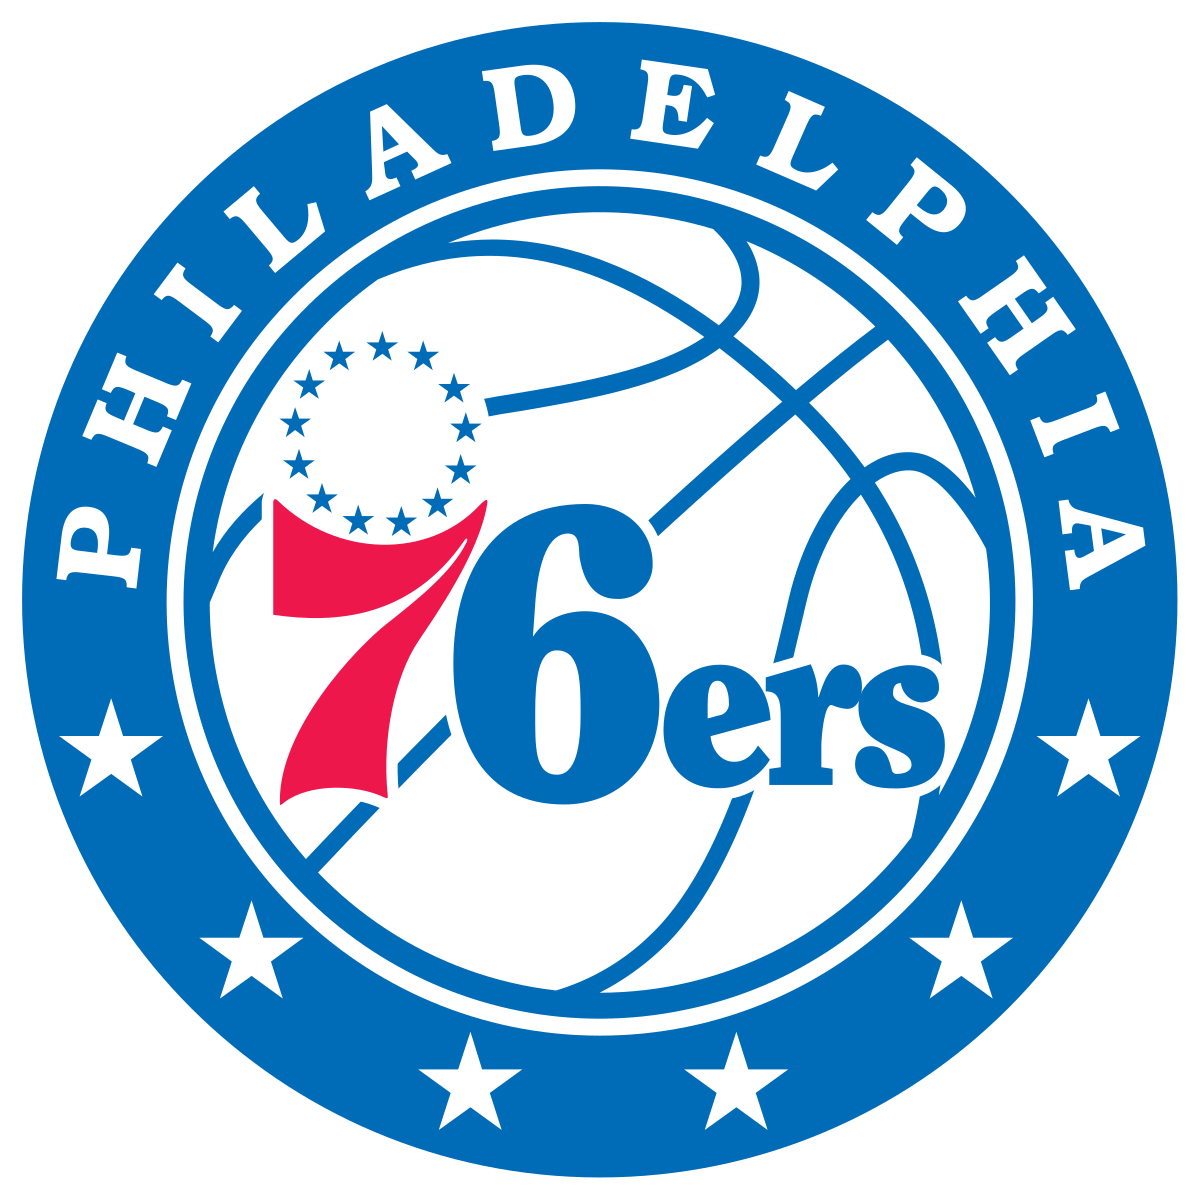 Sixers logo clipart picture black and white Philadelphia 76ers - Wikipedia picture black and white